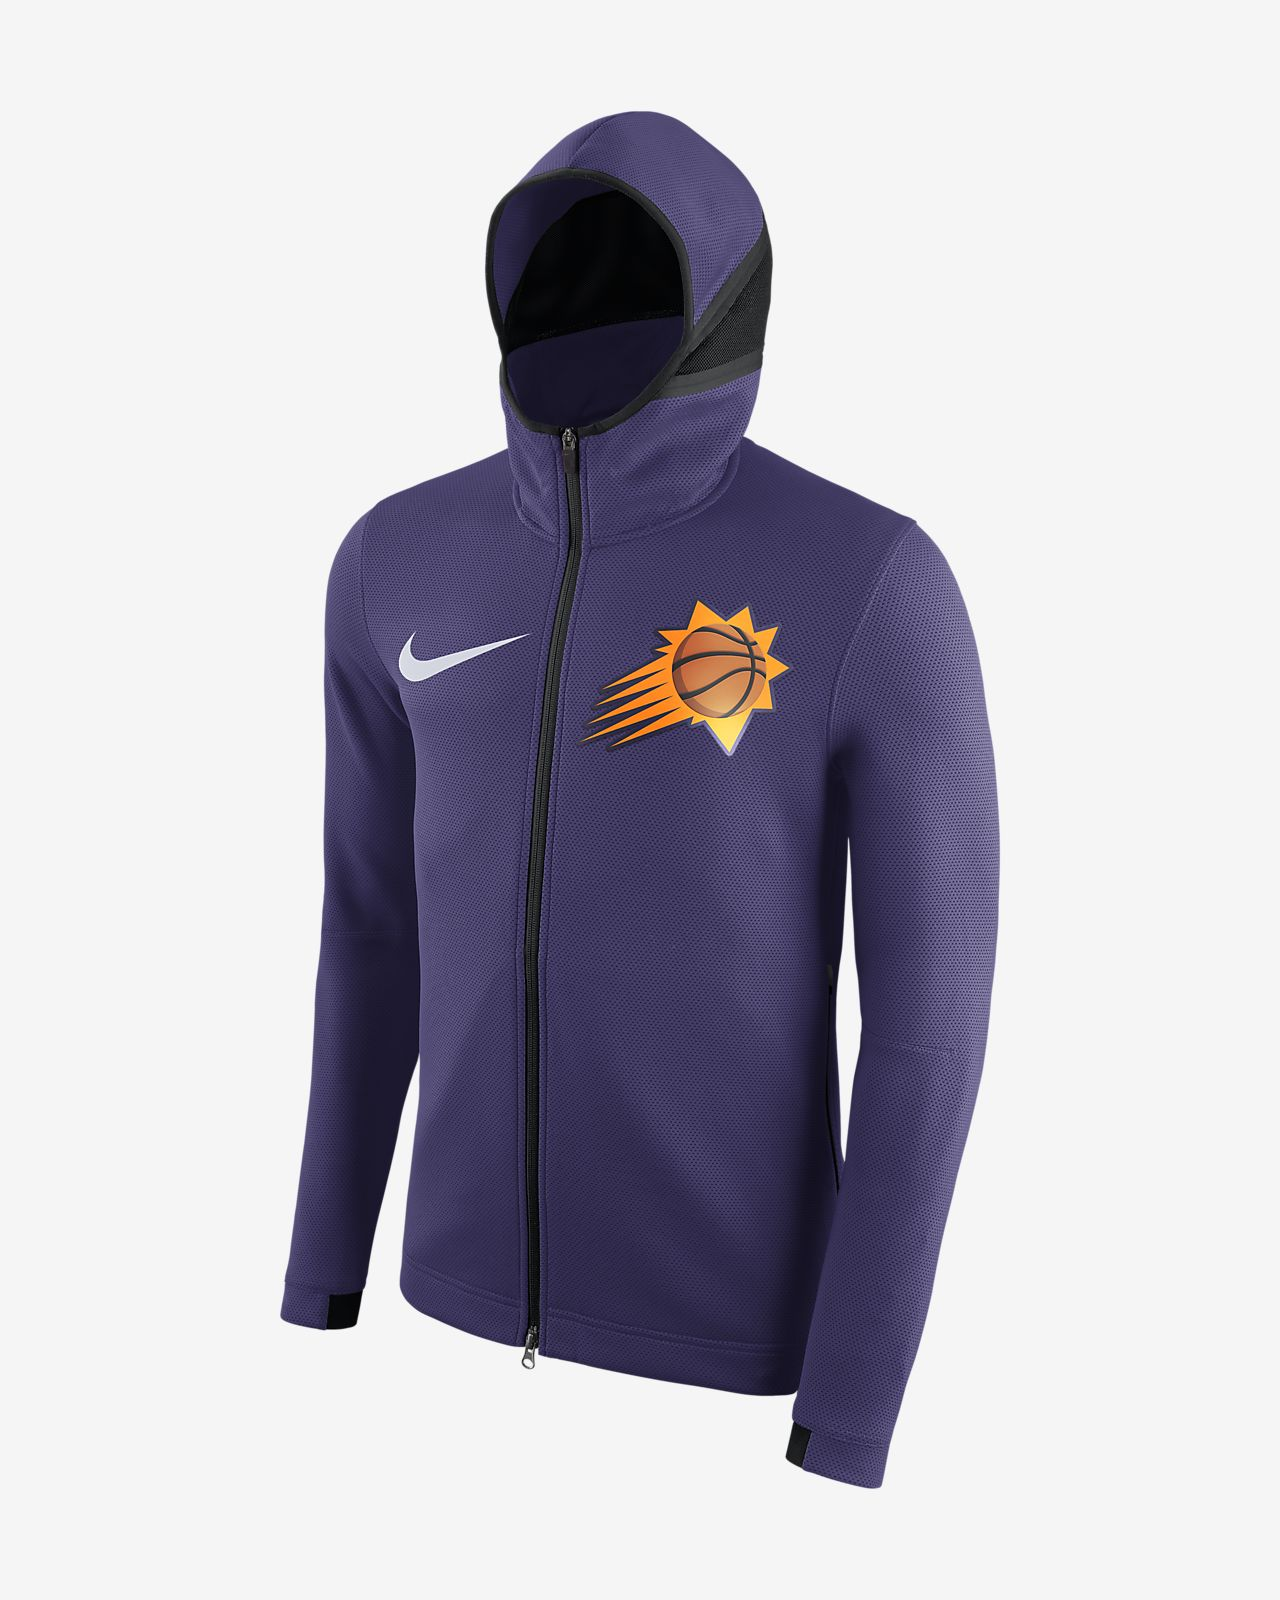 e5db36fb7202 Phoenix Suns Nike Therma Flex Showtime Men s NBA Hoodie. Nike.com